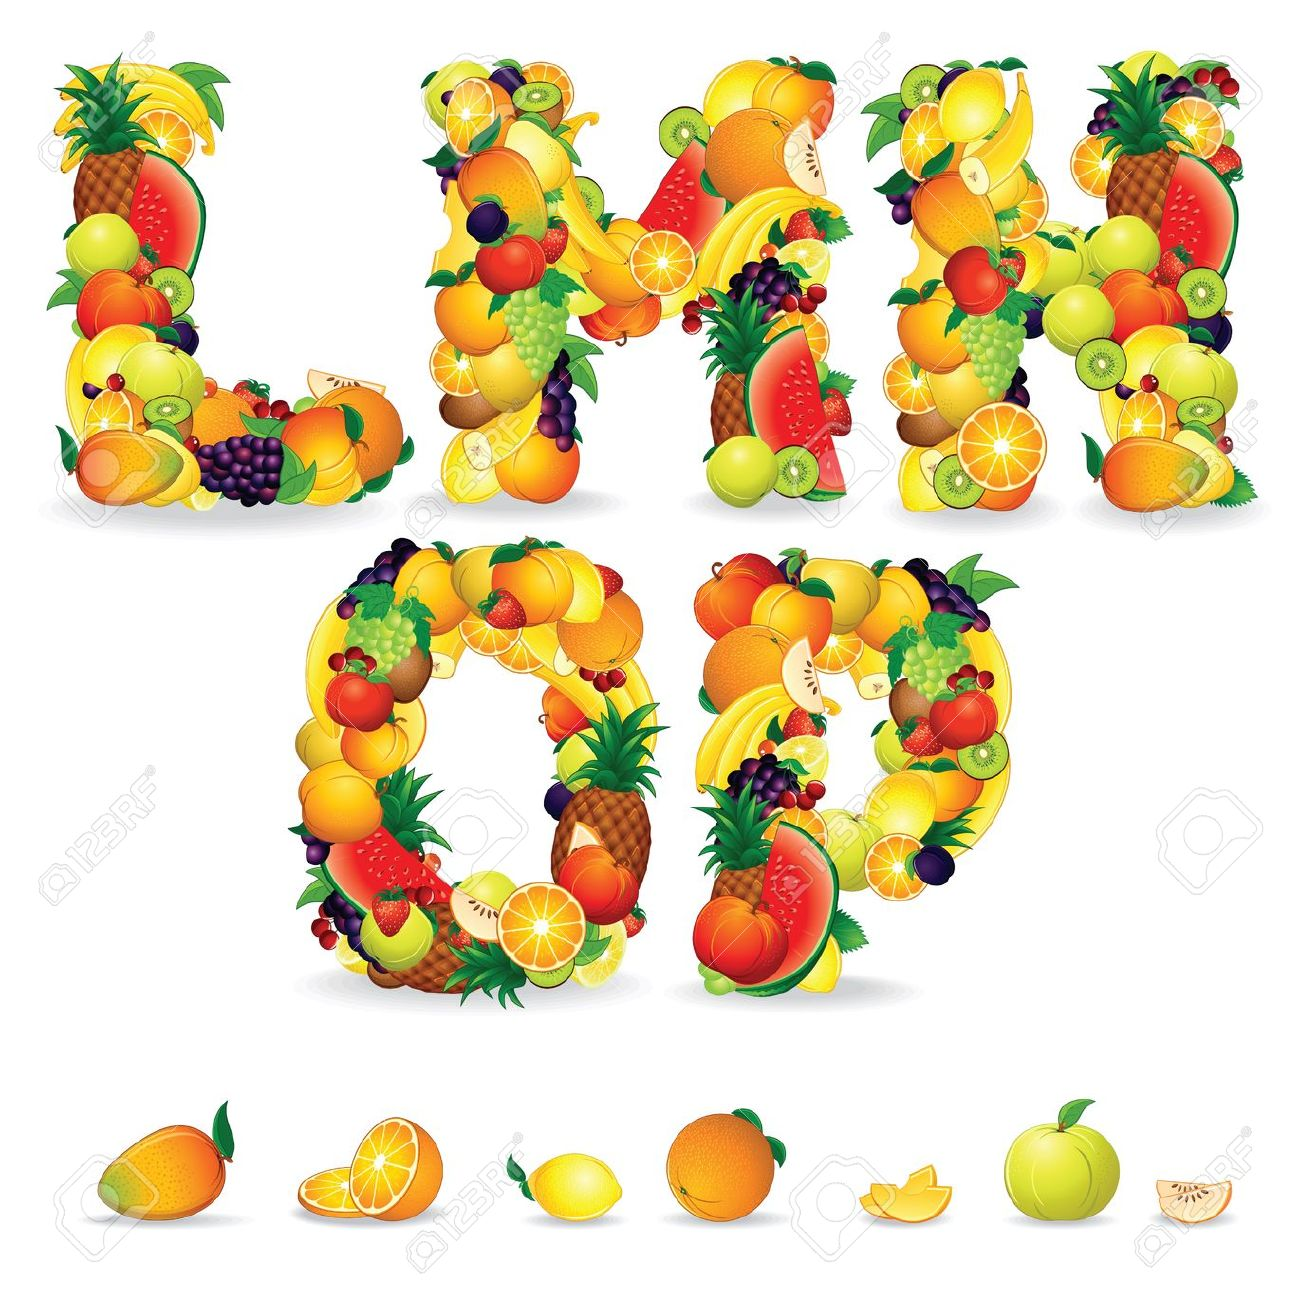 Colorful Letters From Fruit And Berries Clip Art Stock Photo.